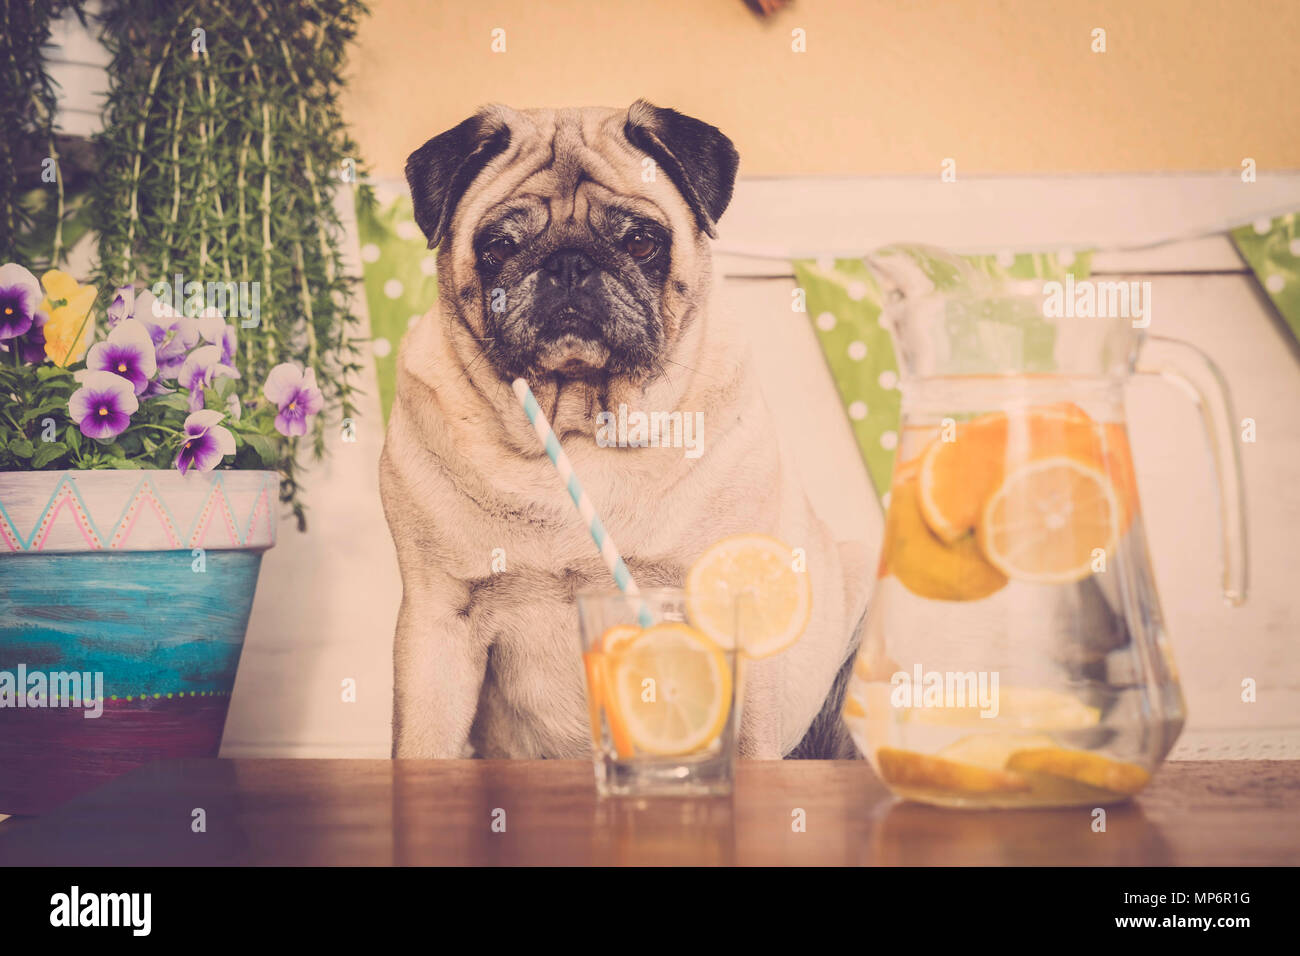 sit down sad clear pug start diet to lost weight. fitness health care concept in funny picture. outdoor. - Stock Image